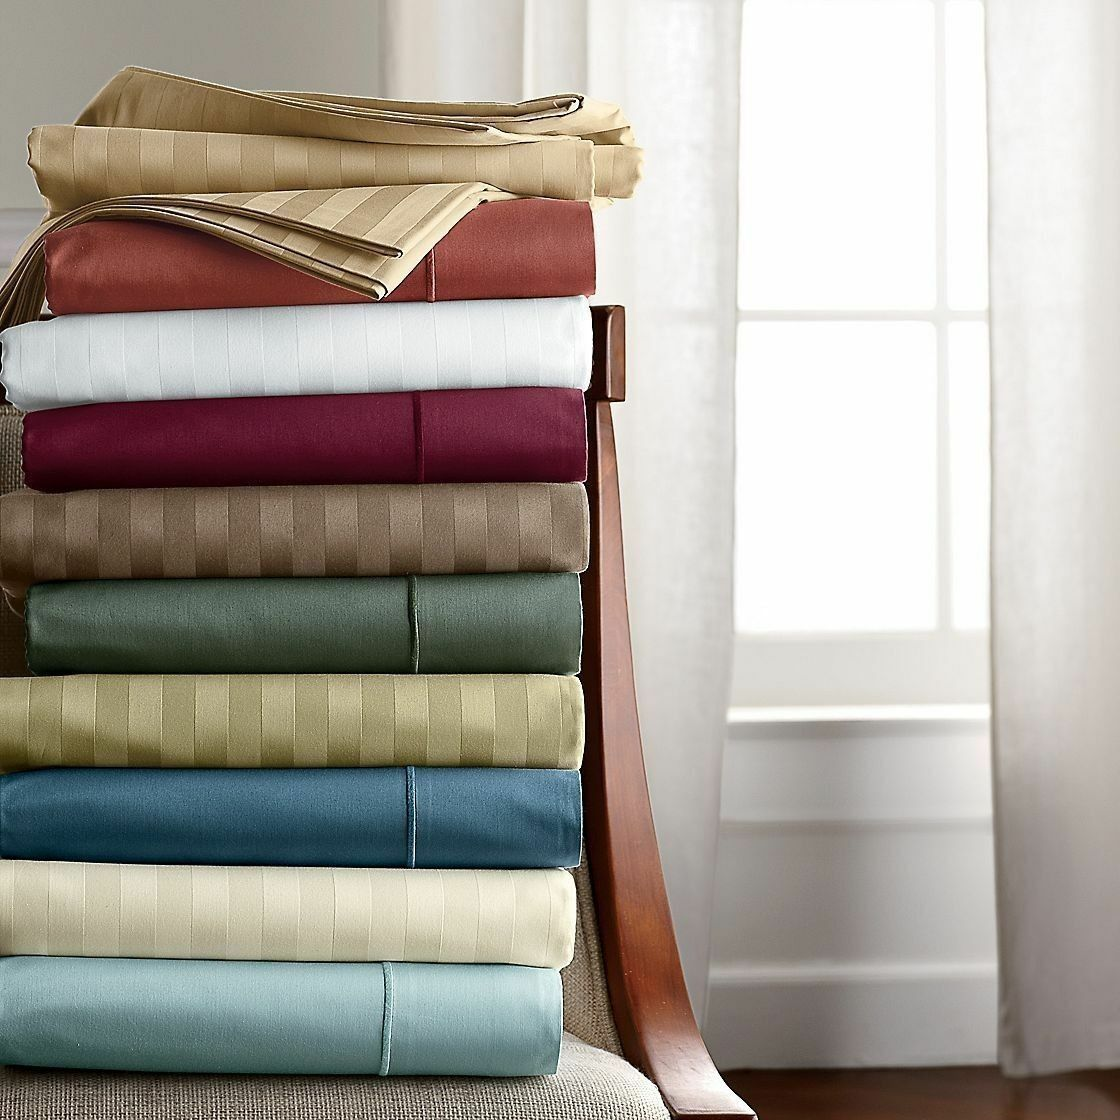 3 PCs Fitted Sheet Set 1000TC Egyptian Cotton Select Solid Strip colors US Queen